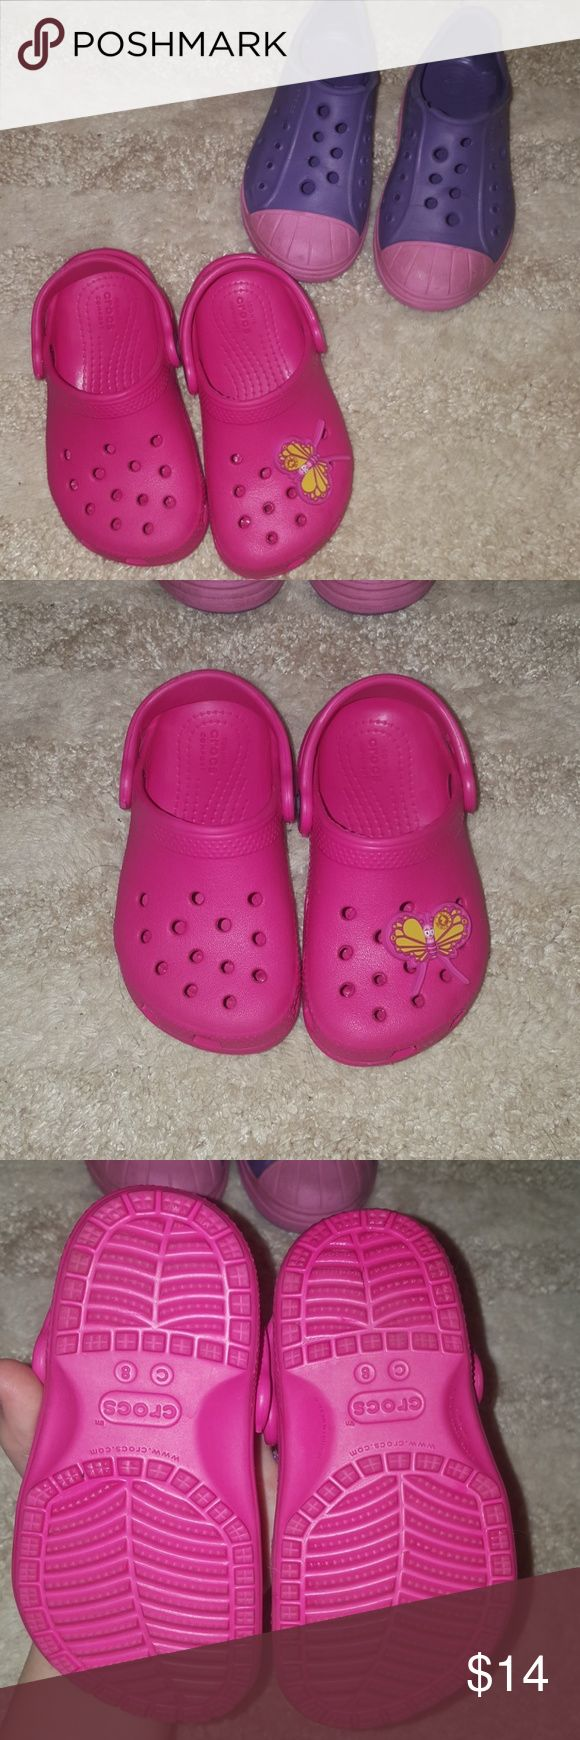 Crocs (tennis shoes and classic) Hello all! These are a super cute bundle of little girl (toddler) size 8 crocs. They are the classic style and the tennis shoe style. The classic pair hasnt even been worn, if any wear maybe once, and the tennis shoe pair does have some wear.  Mostly darkening on the lite pink toes amd sides. Tons of life left! There is a butterfly button on the pink pair. They have been washed as well! Great for any little girl! Smoke free home and offers and questions…